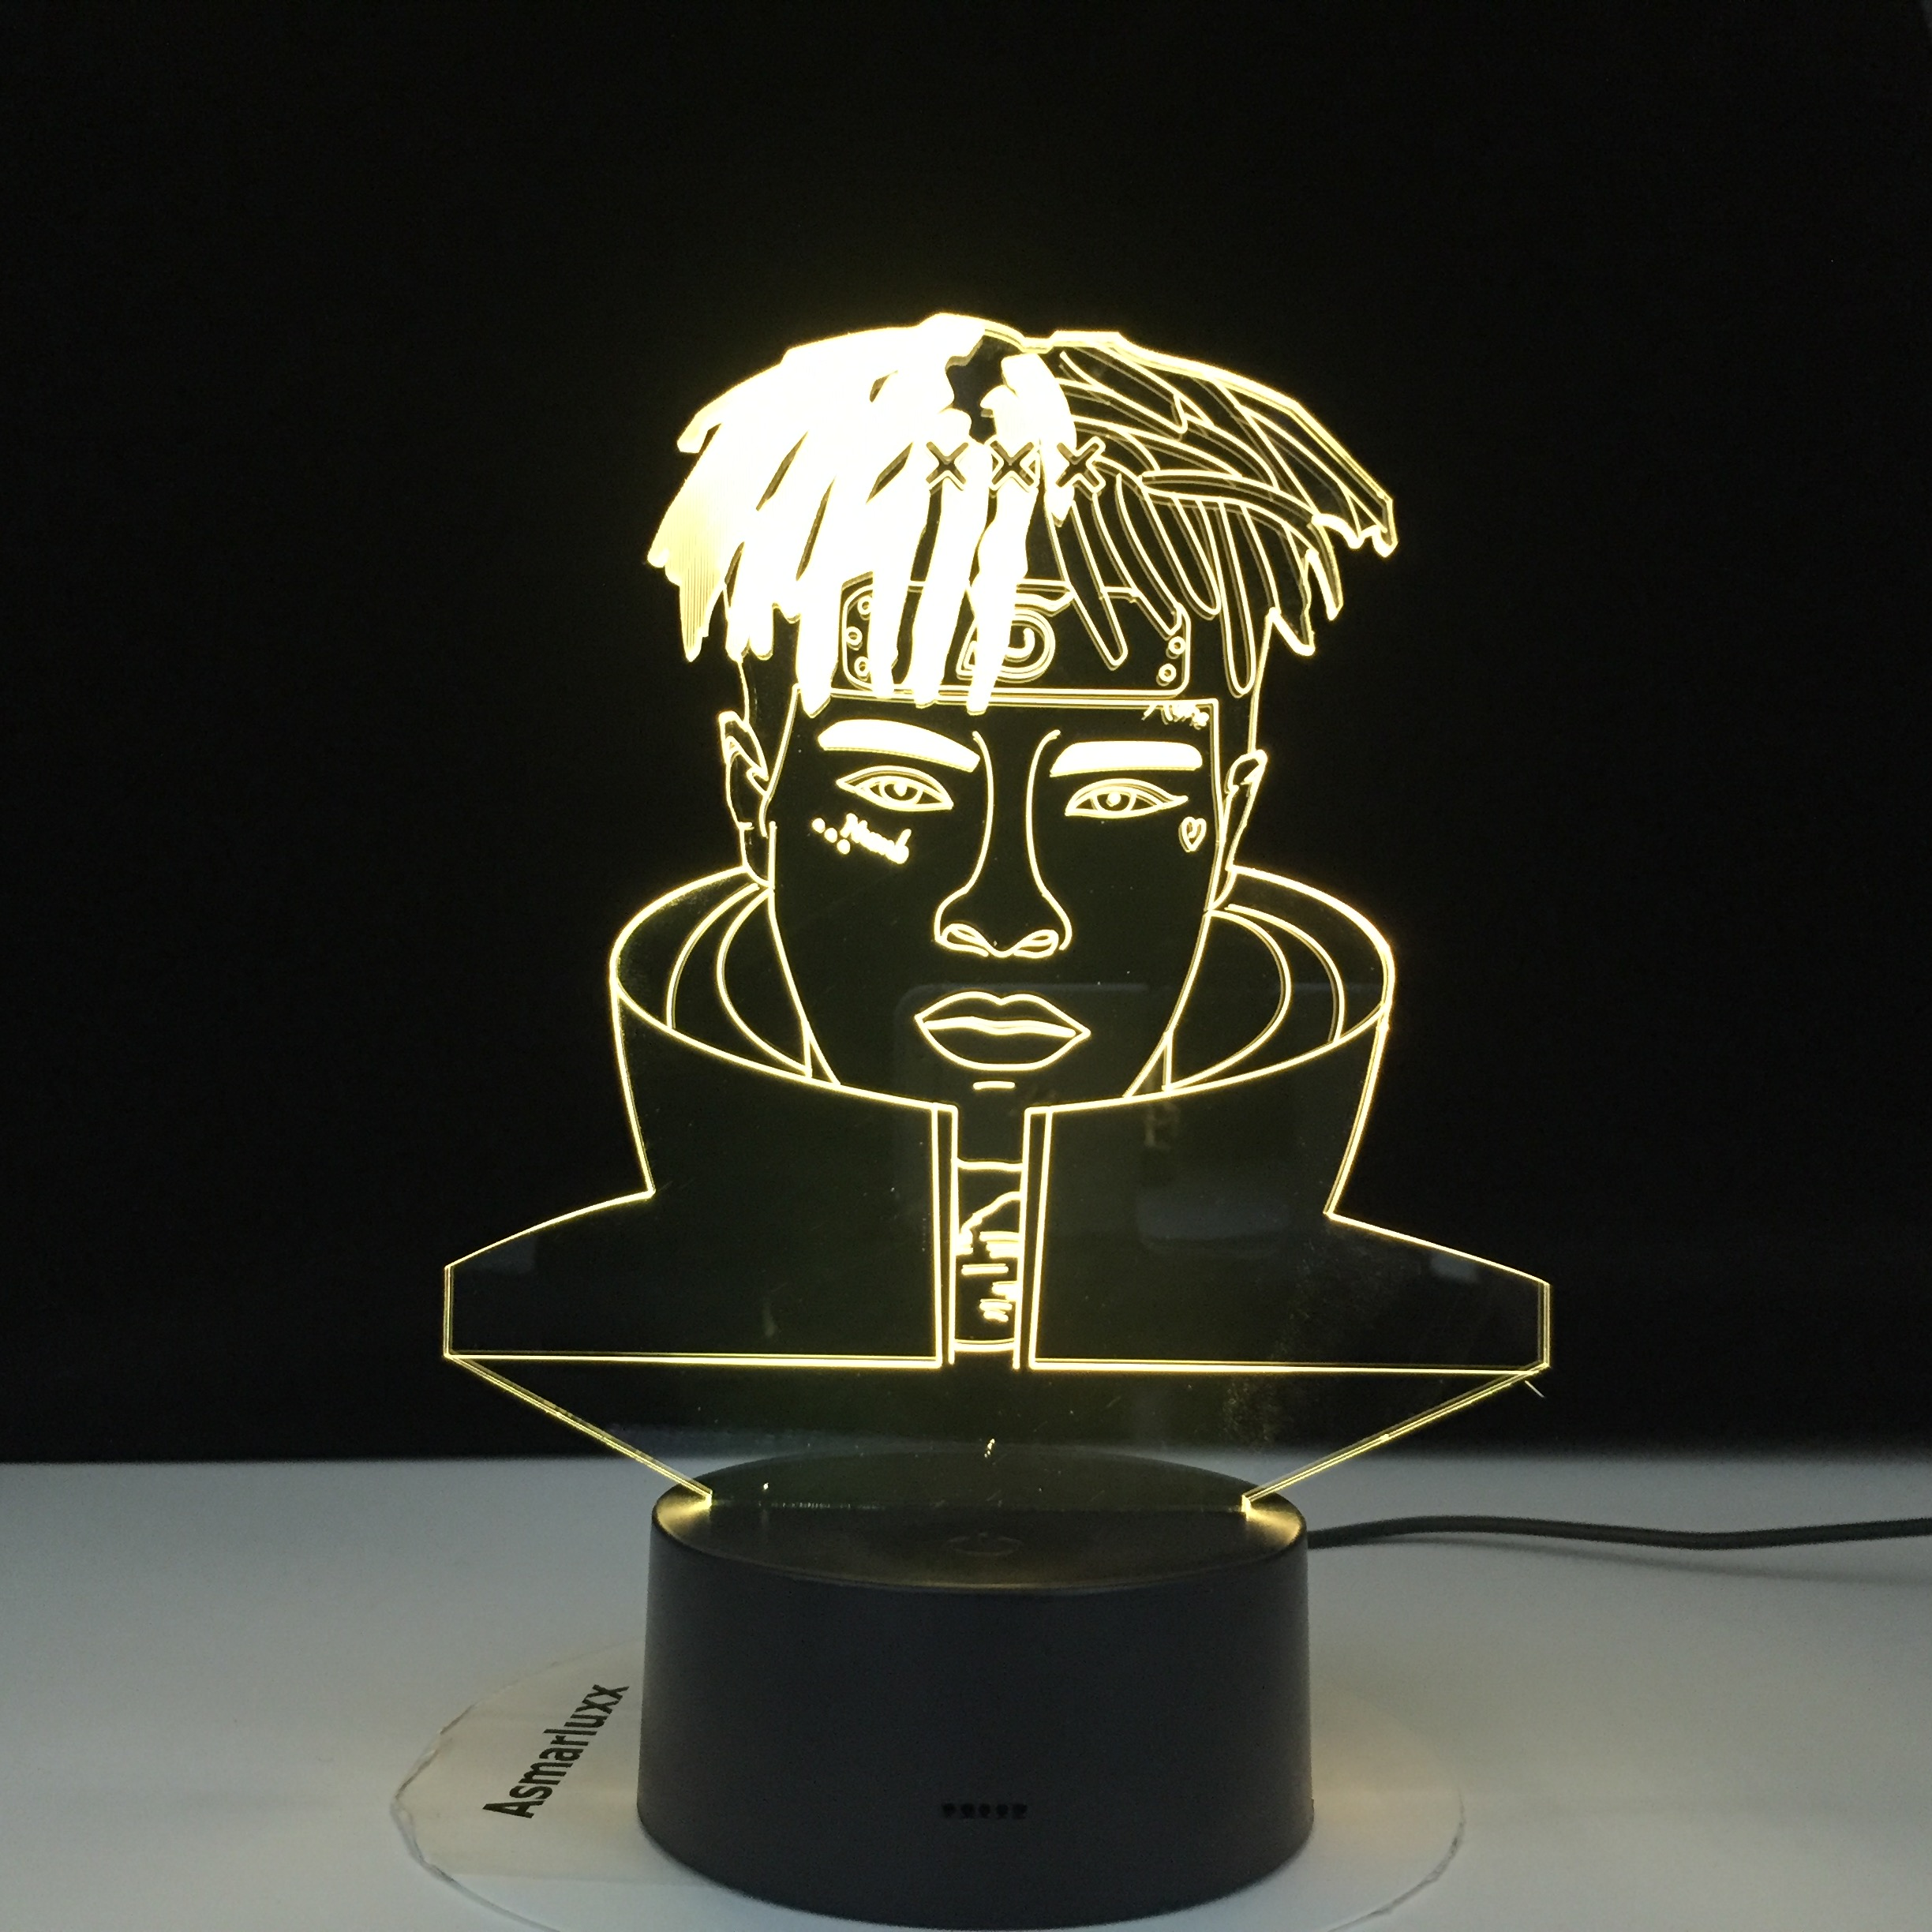 2020 Rapper XXX Tentacion Figurine 3D Illusion Lamp Decoration Night Lights Jahseh Dwayne Ricardo Onfroy Souvenir Gifts For Fans